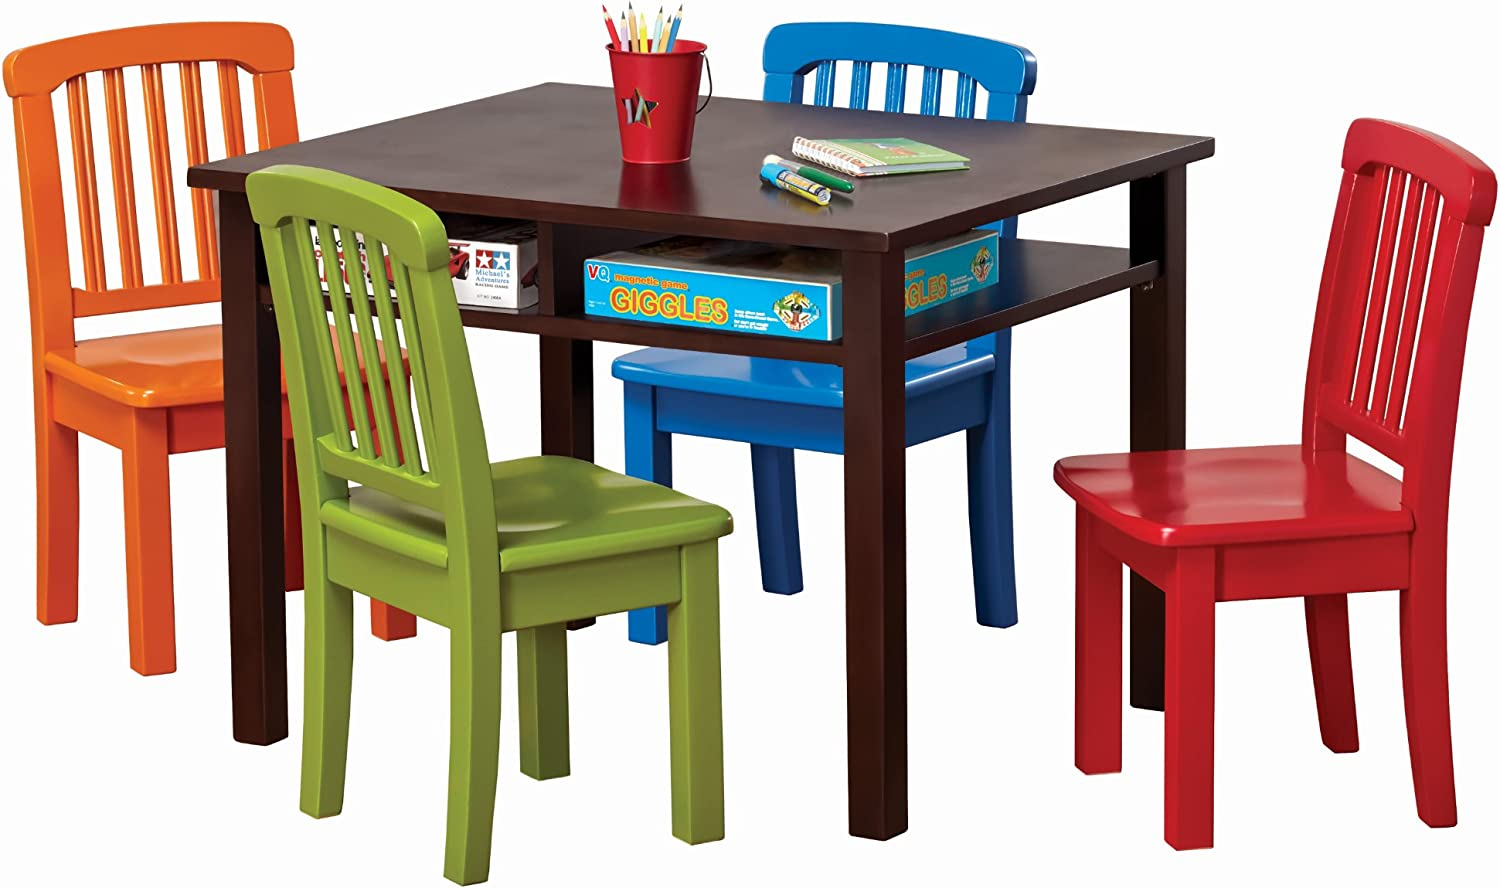 Ukid Rectangle Childrens Game Table with 8 Chairs, Chocolate